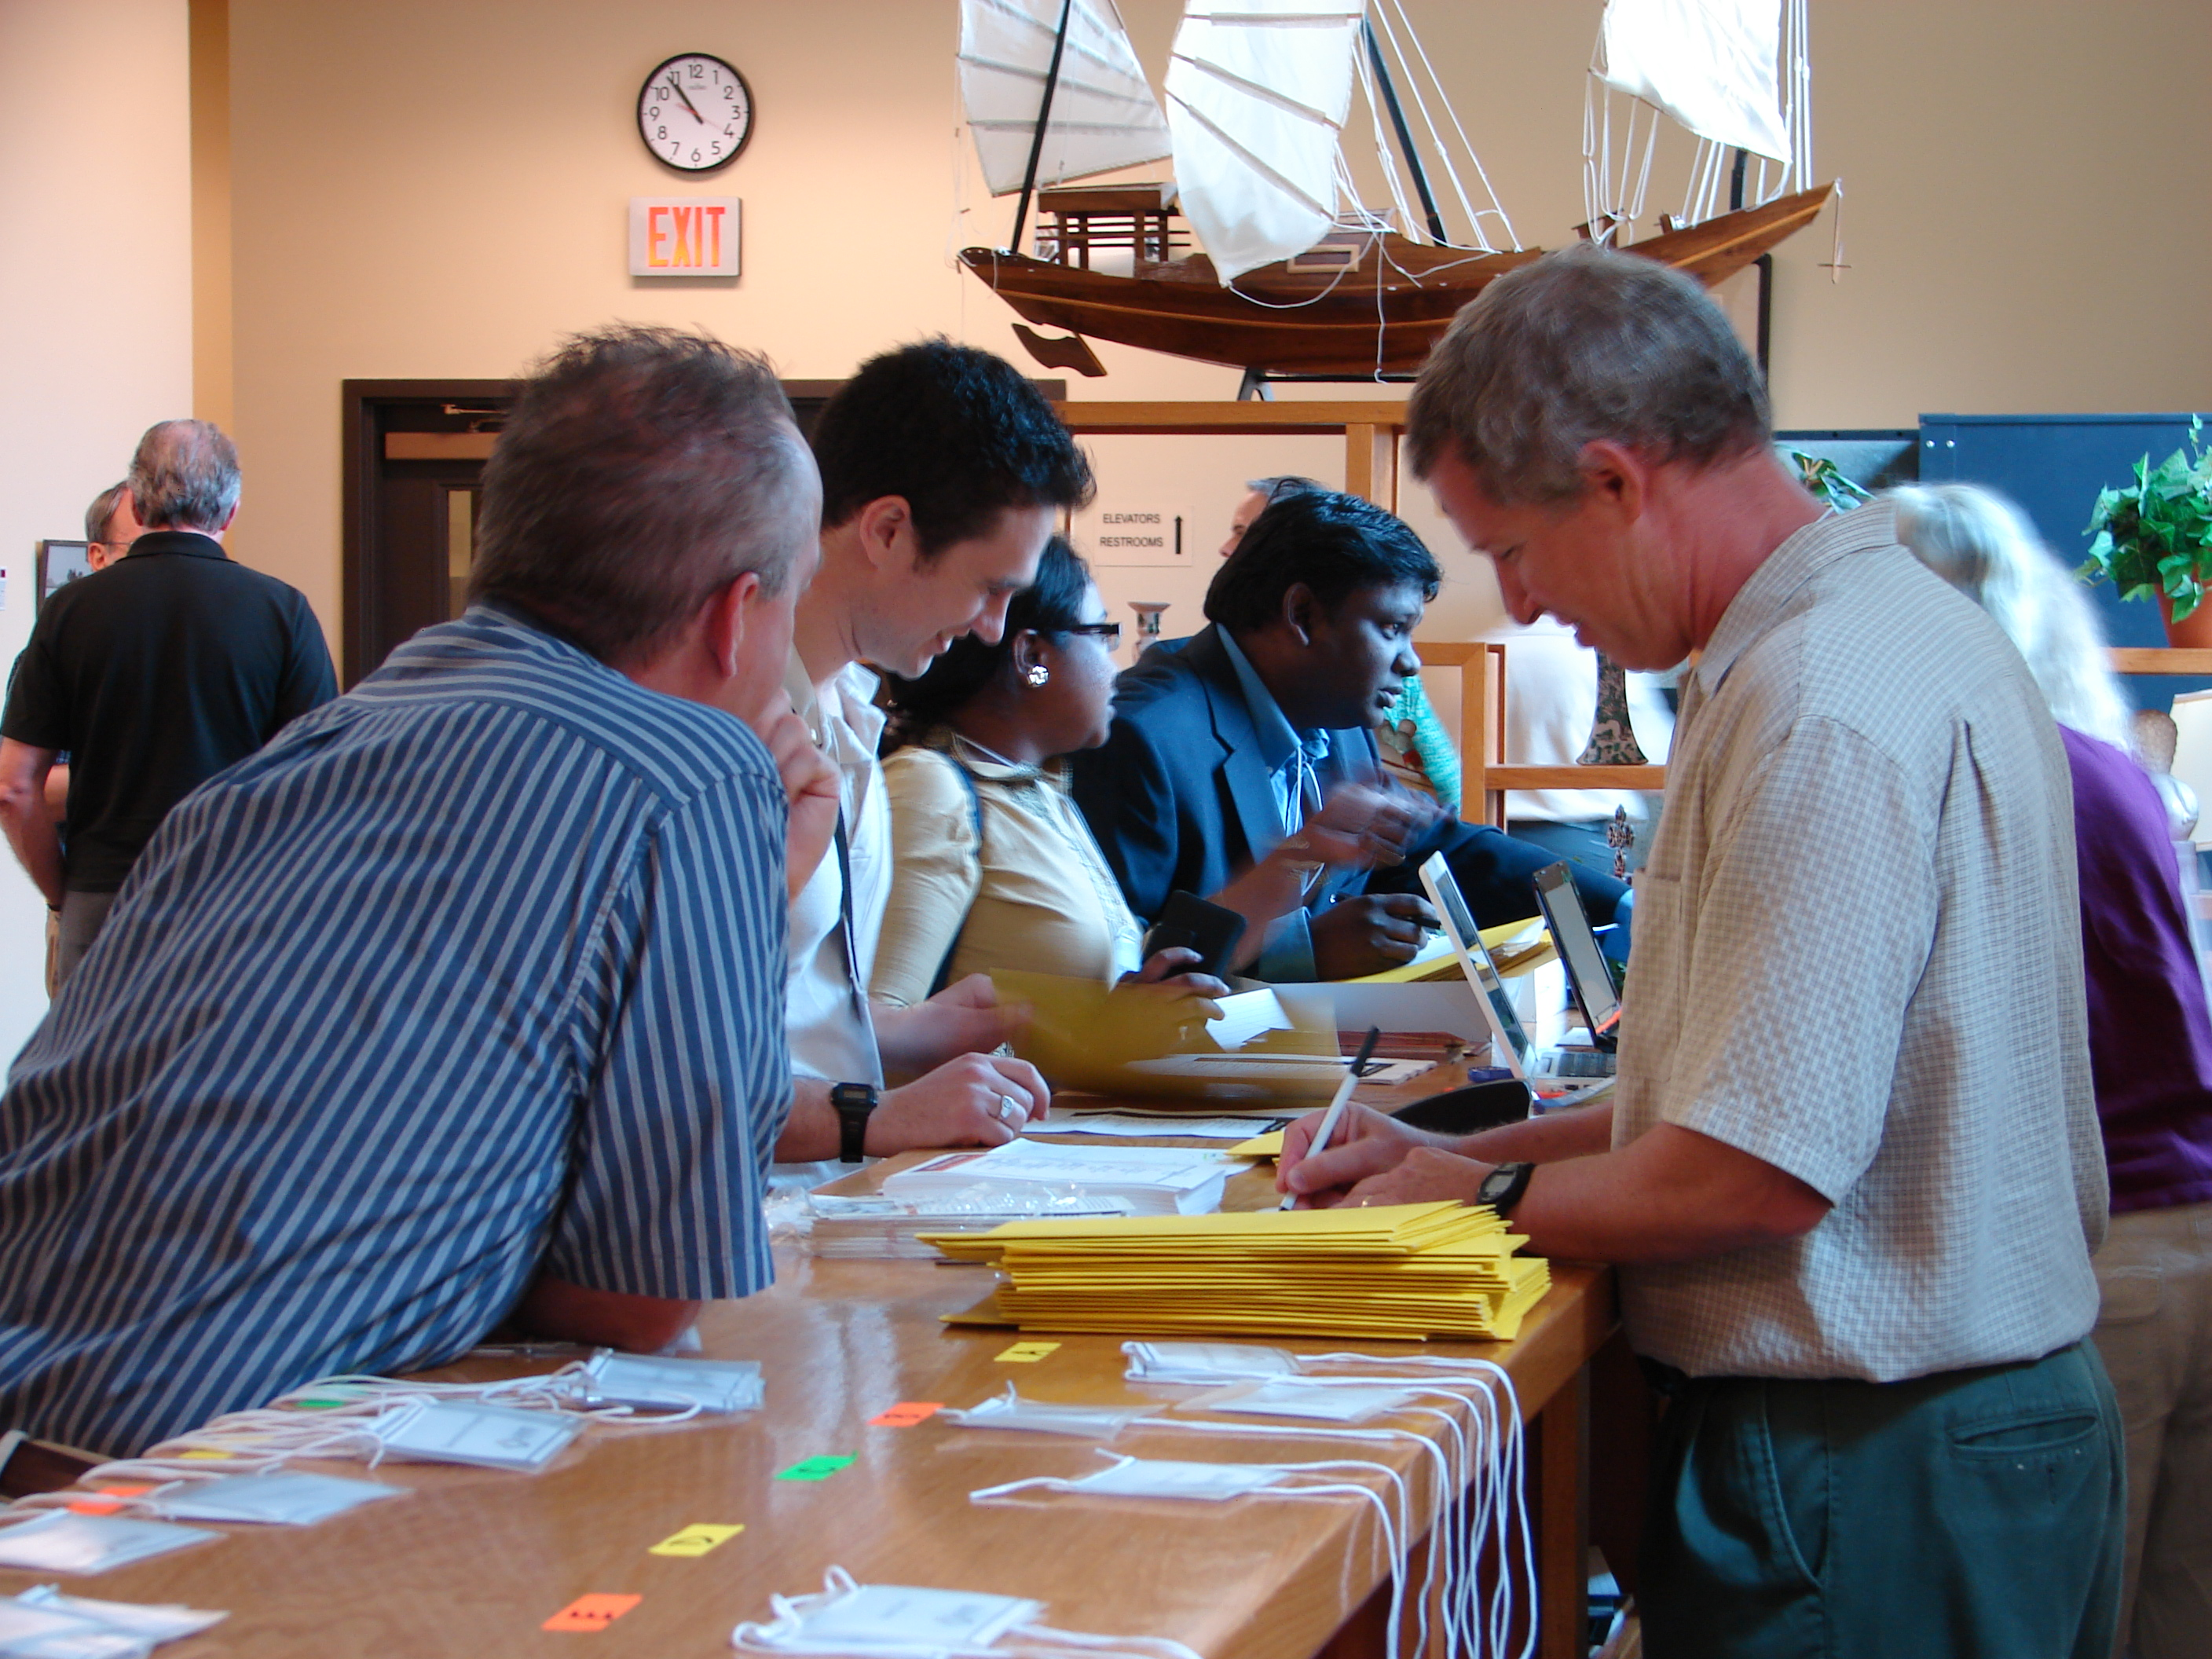 Annual Mtg - Registration Table